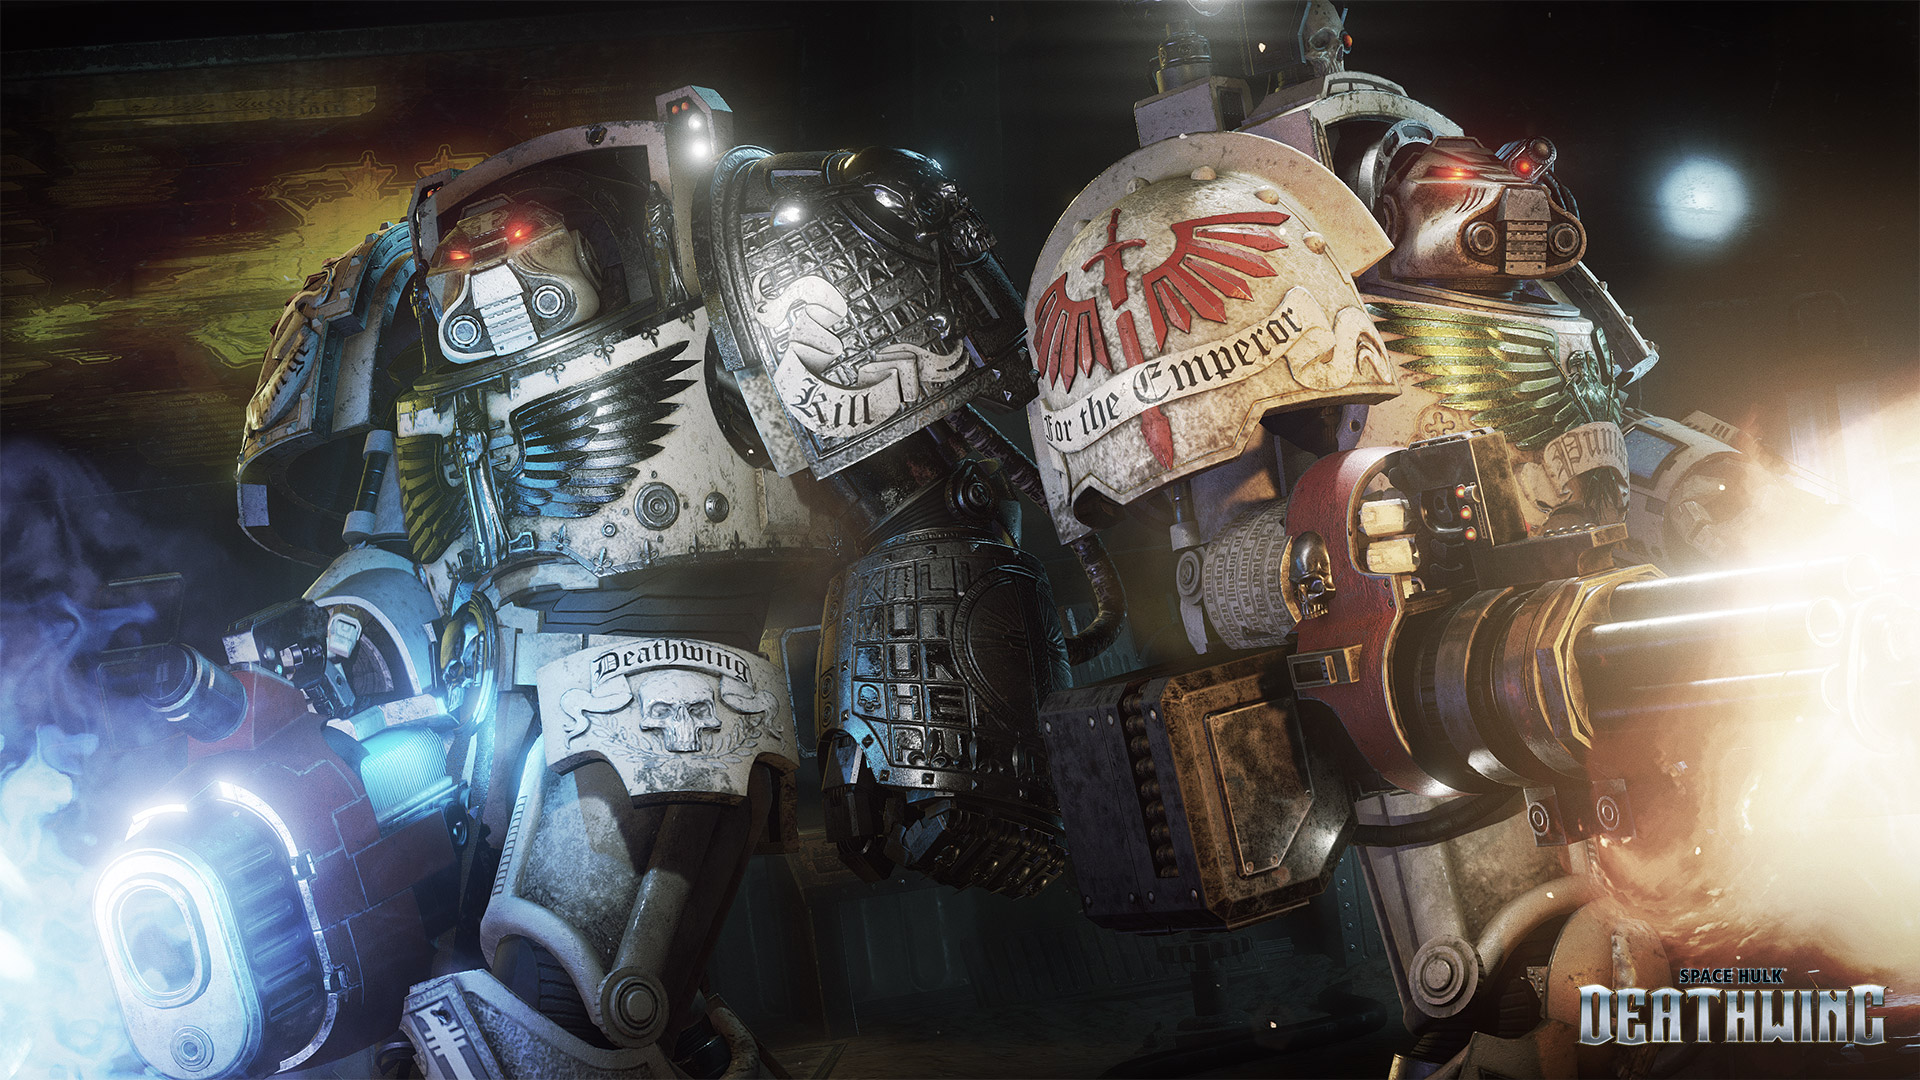 space hulk deathwing terminators back to back